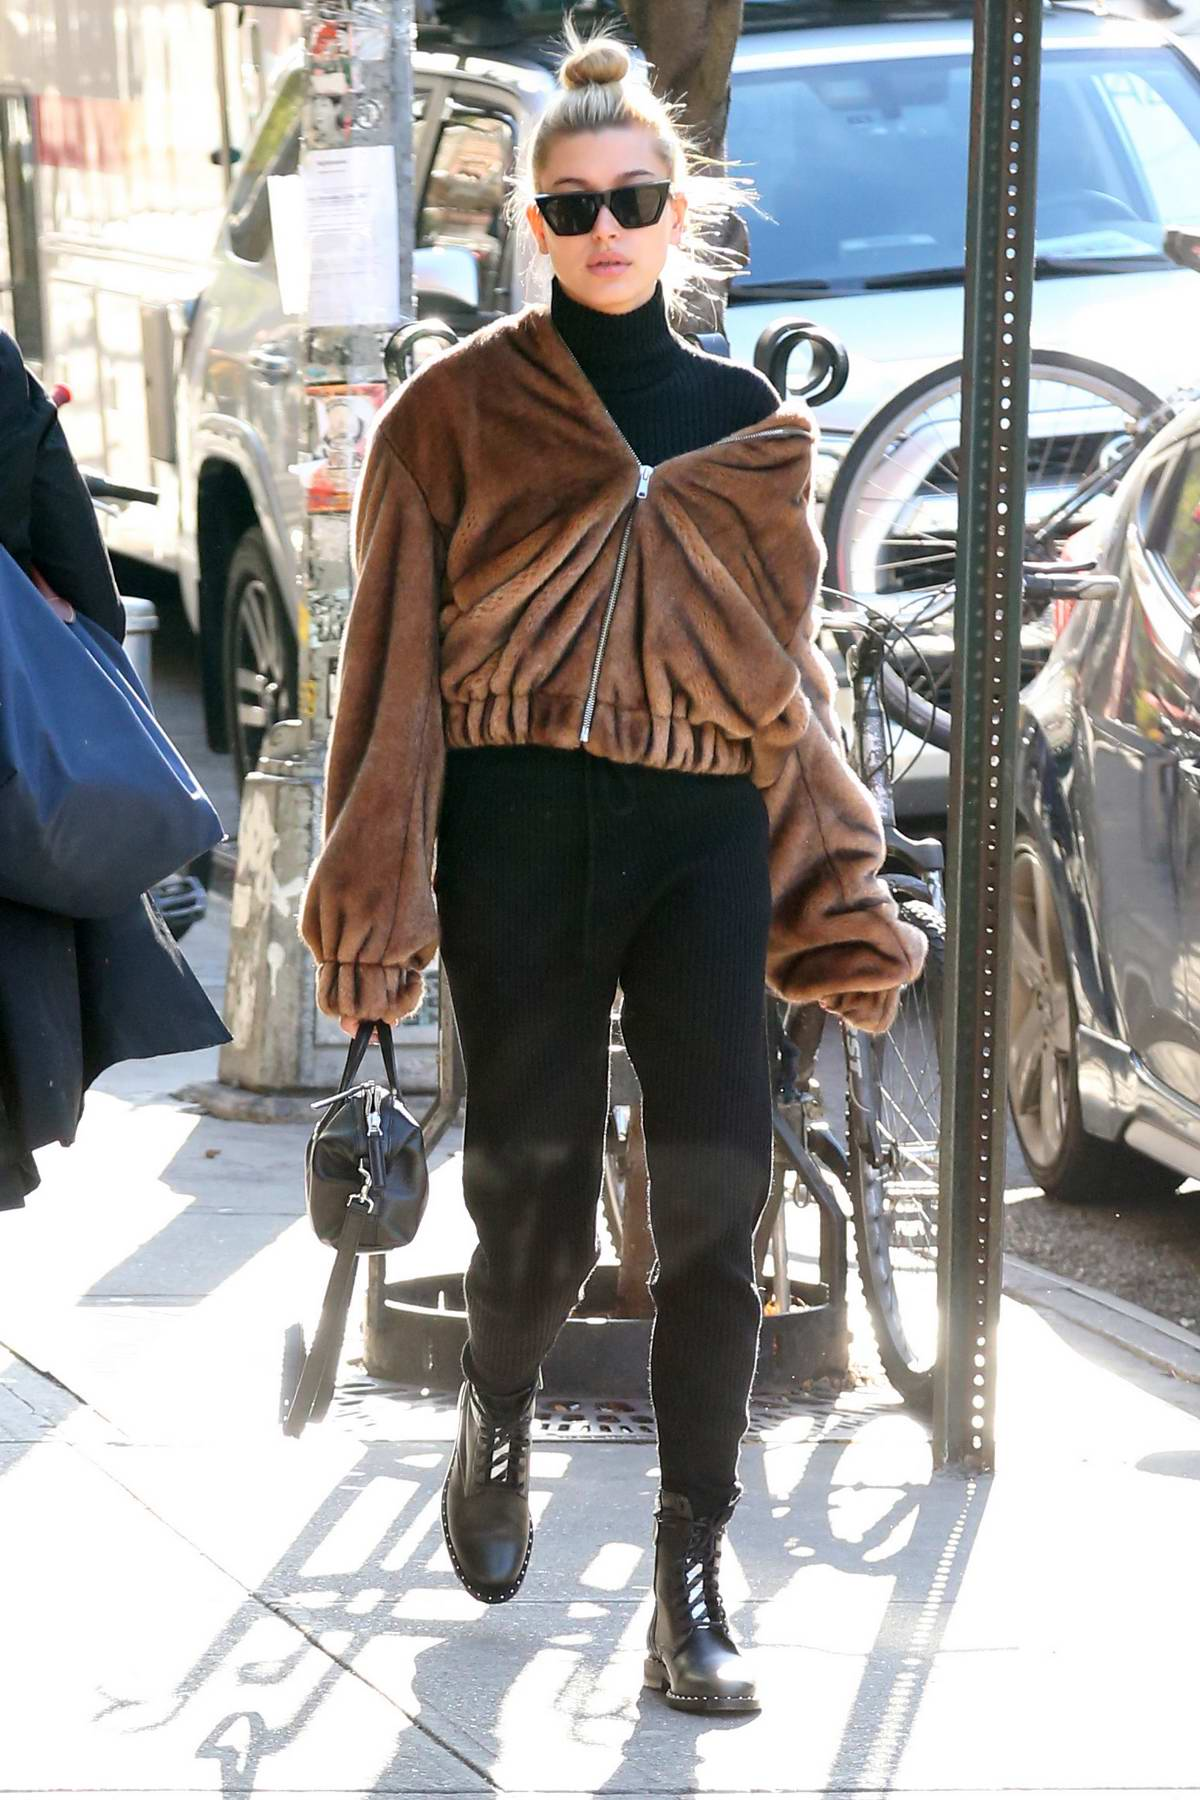 Hailey Baldwin dressed for winters as she heads out in New York City